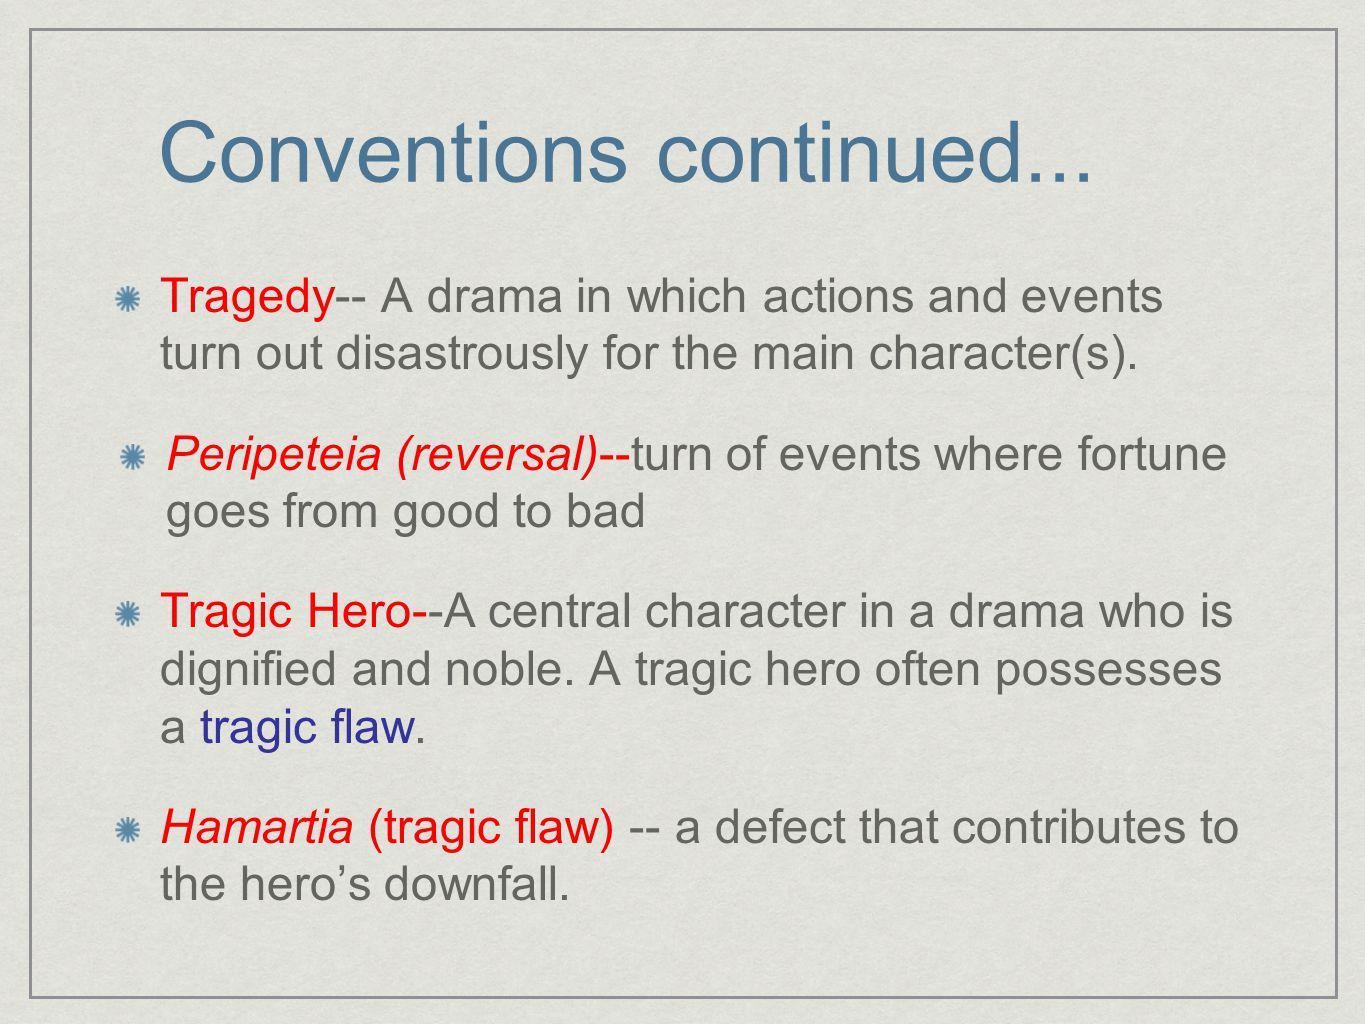 Conventions continued... Tragedy-- A drama in which actions and events turn out disastrously for the main character(s). Peripeteia (reversal)--turn of